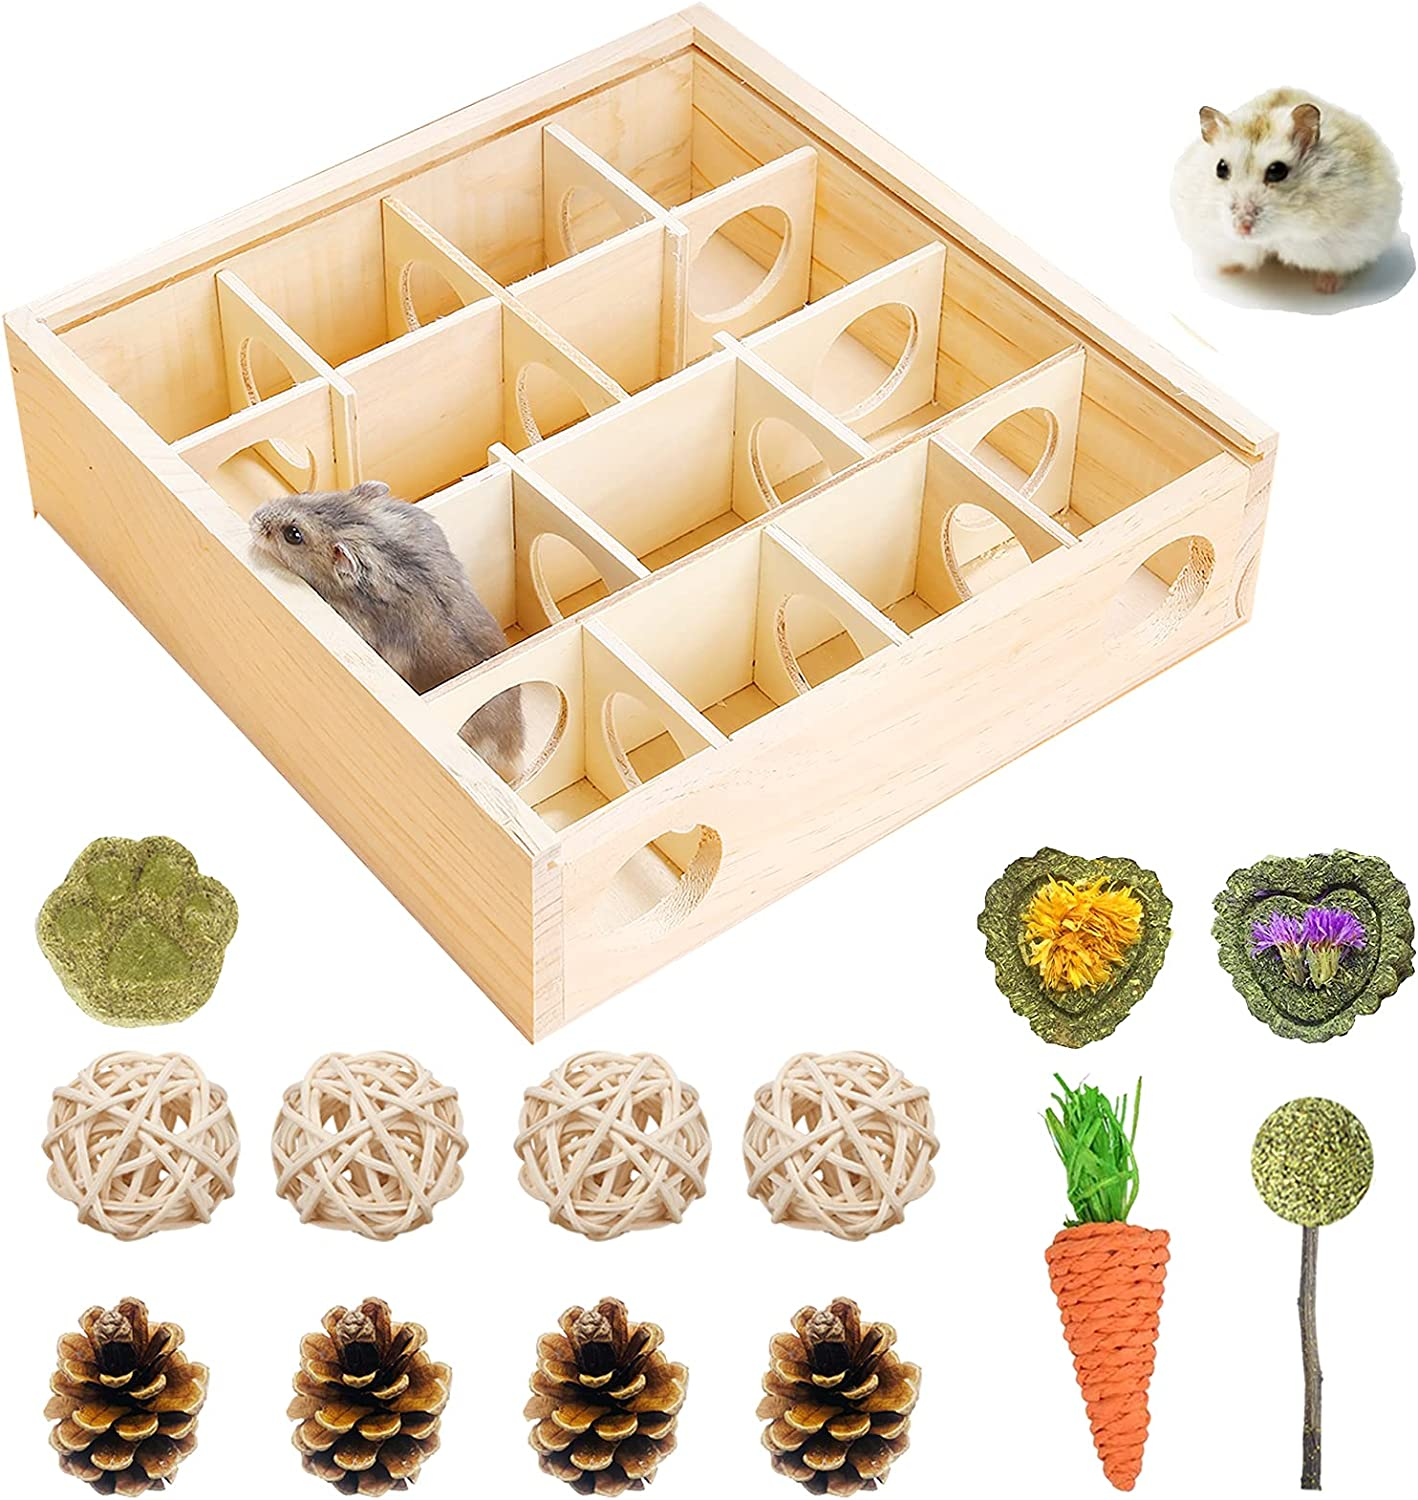 Hamster cheap Wooden Maze Tunnel with New sales Cover Plastic Ch and Transparent